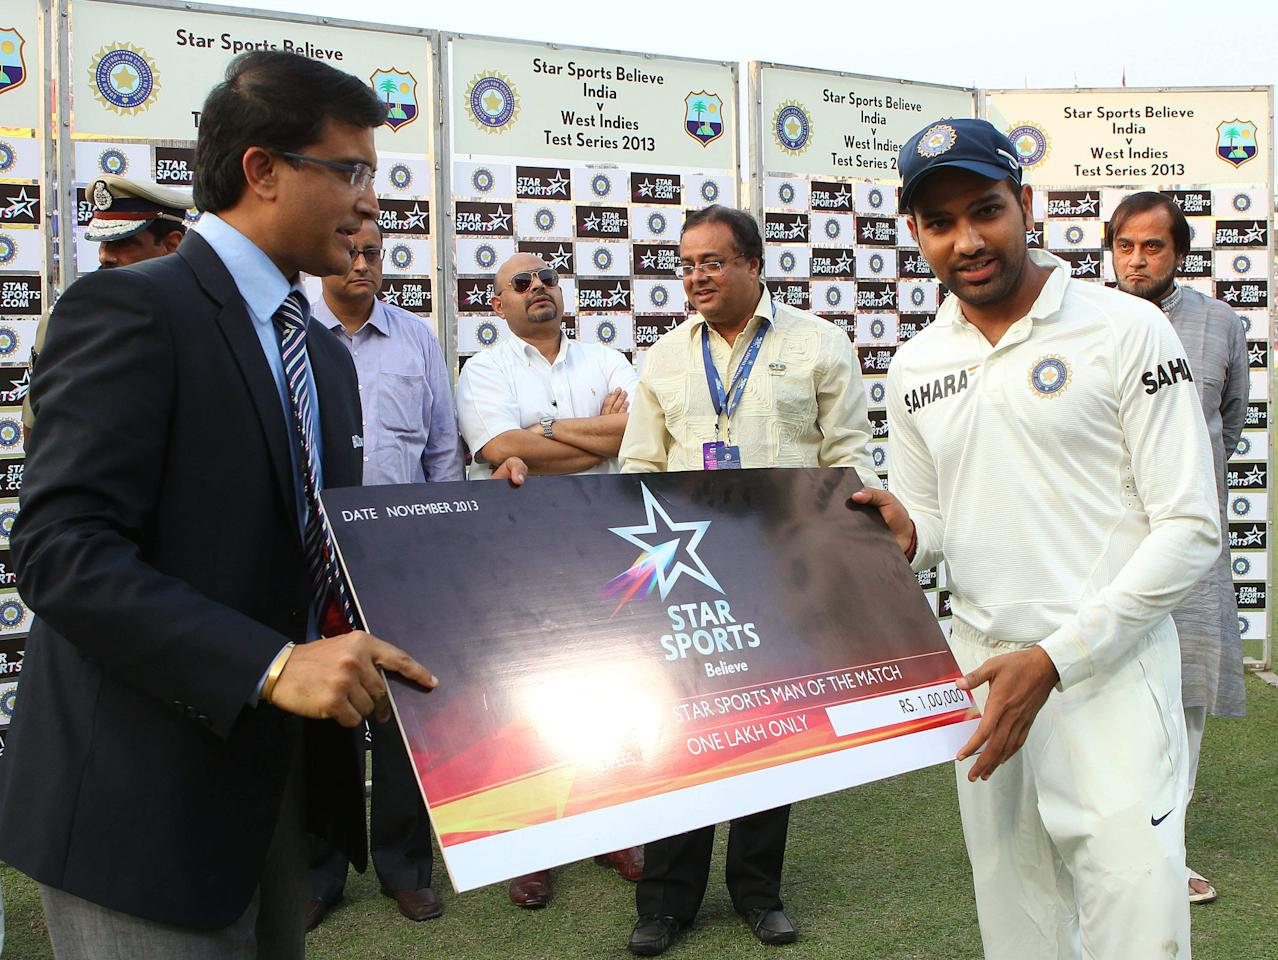 Rohit Sharma of India is man of the match during day three of the first Star Sports test match between India and The West Indies held at The Eden Gardens Stadium in Kolkata, India on the 8th November 2013  Photo by: Ron Gaunt - BCCI - SPORTZPICS